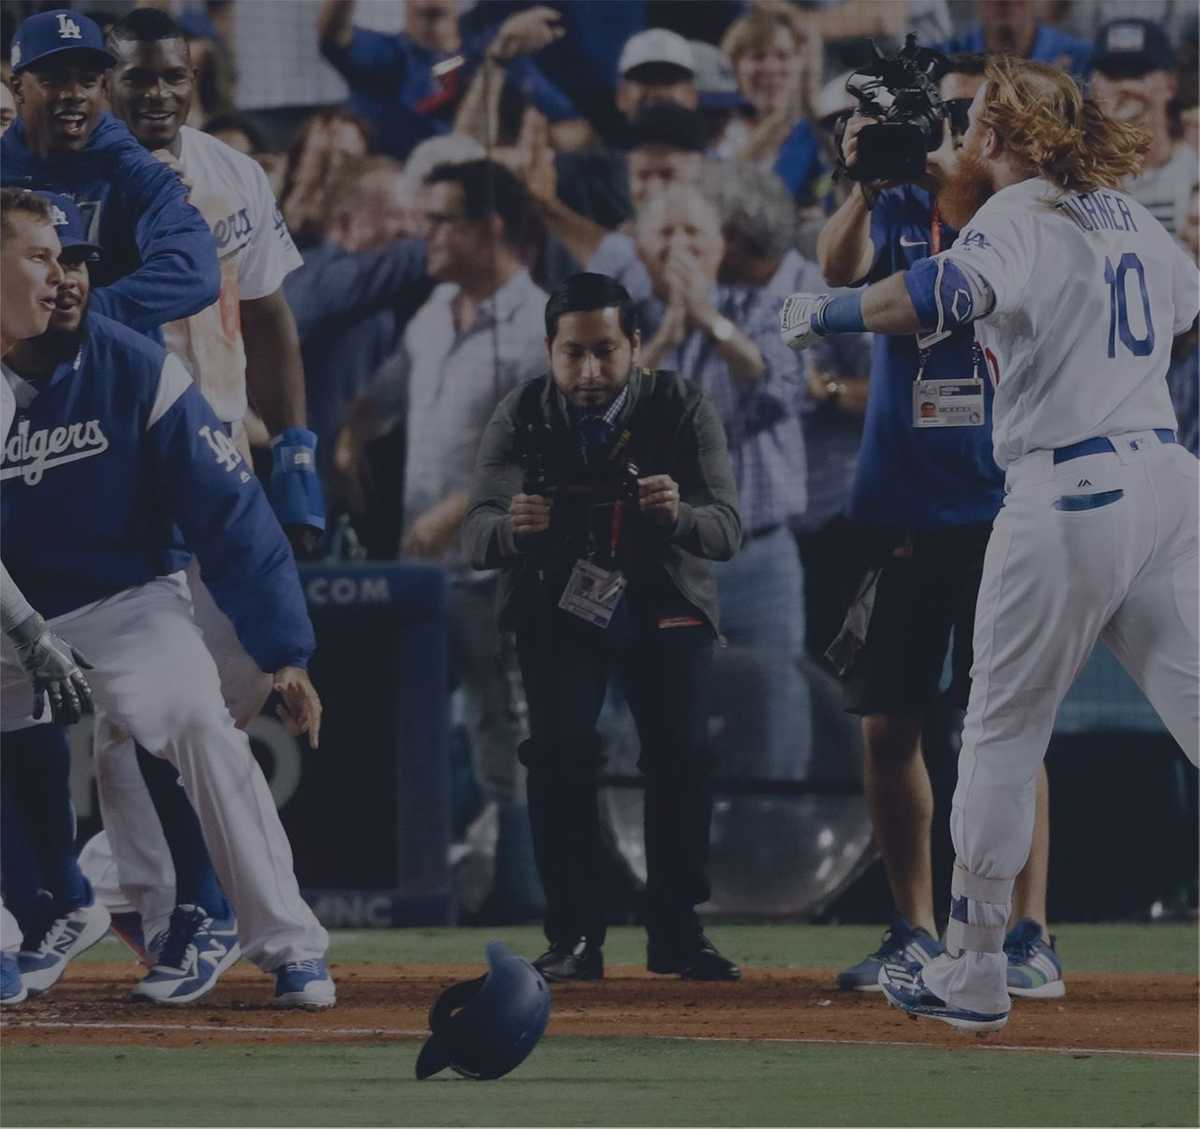 Matthew Mesa filming Los Angeles Dodgers' Justin Turner's walk-off home run in the 2017 NLCS vs. Chicago Cubs